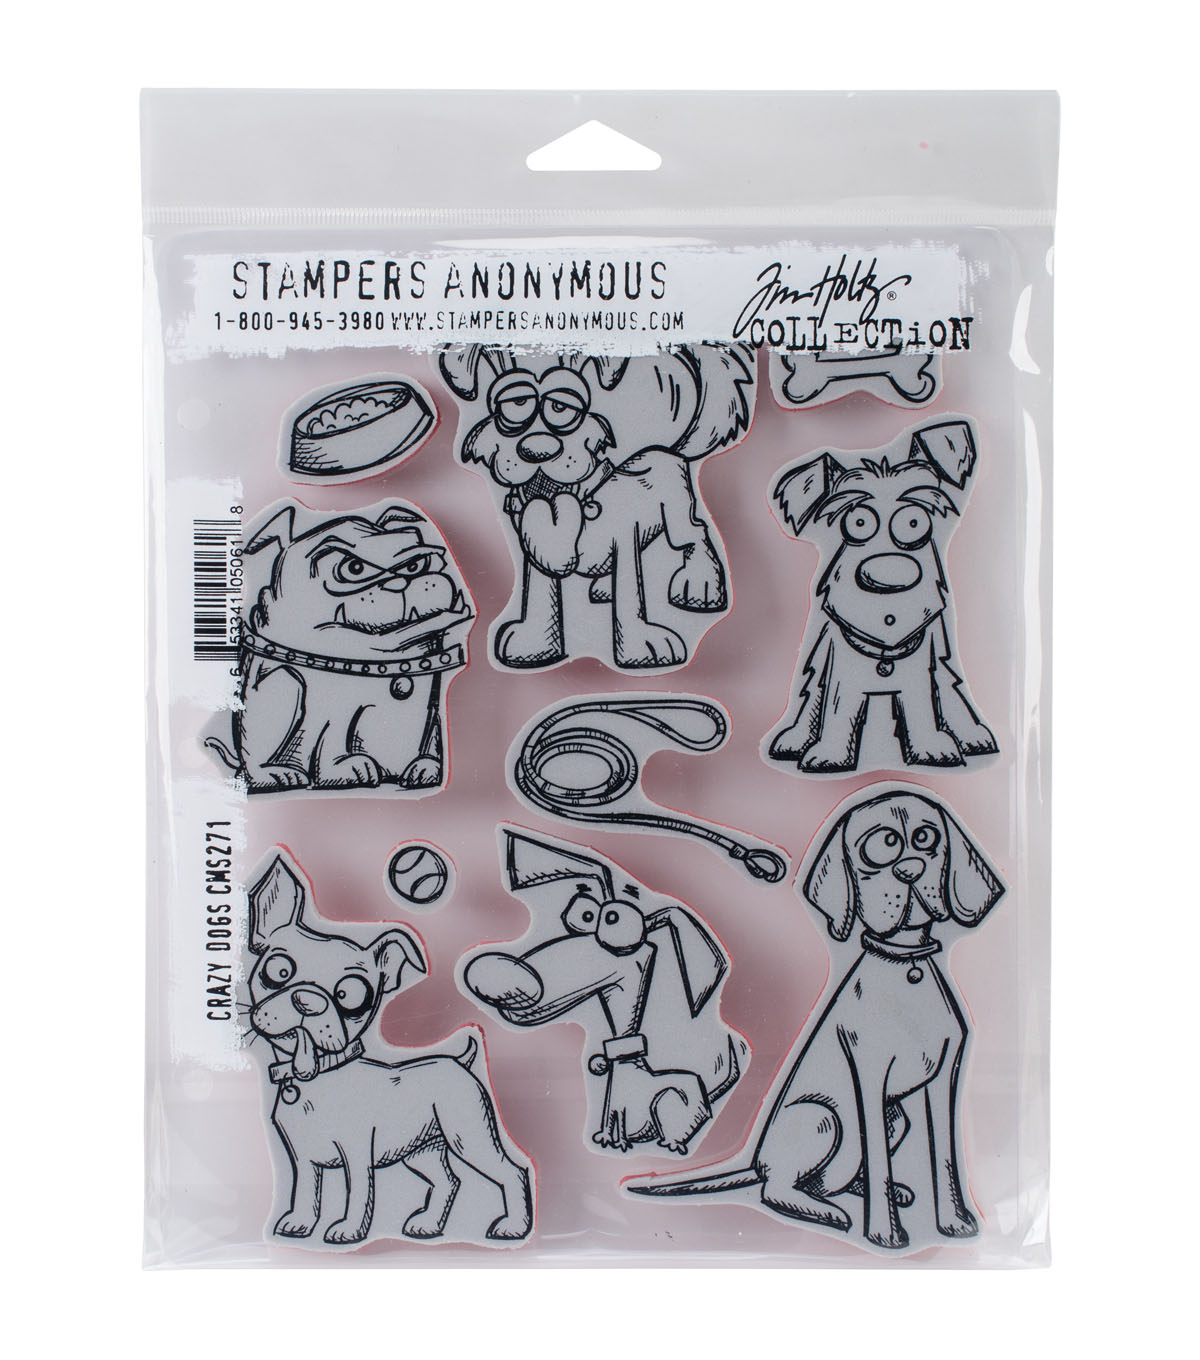 Stampers Anonymous Tim Holtz Cling Mount Stamps-Crazy Dogs